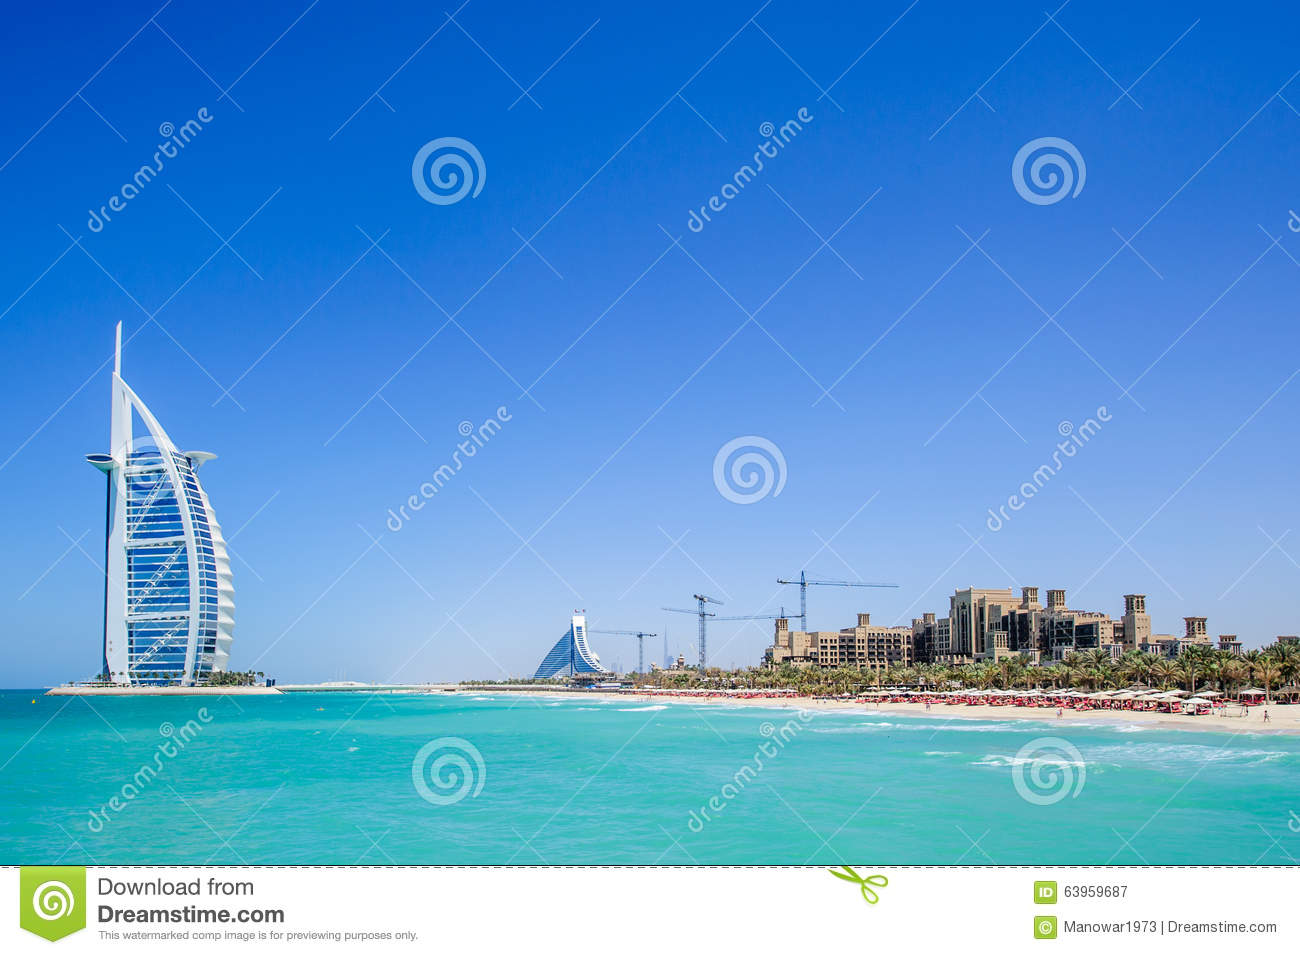 Burj al arab hotel dubai uae editorial photography image for The sail hotel dubai